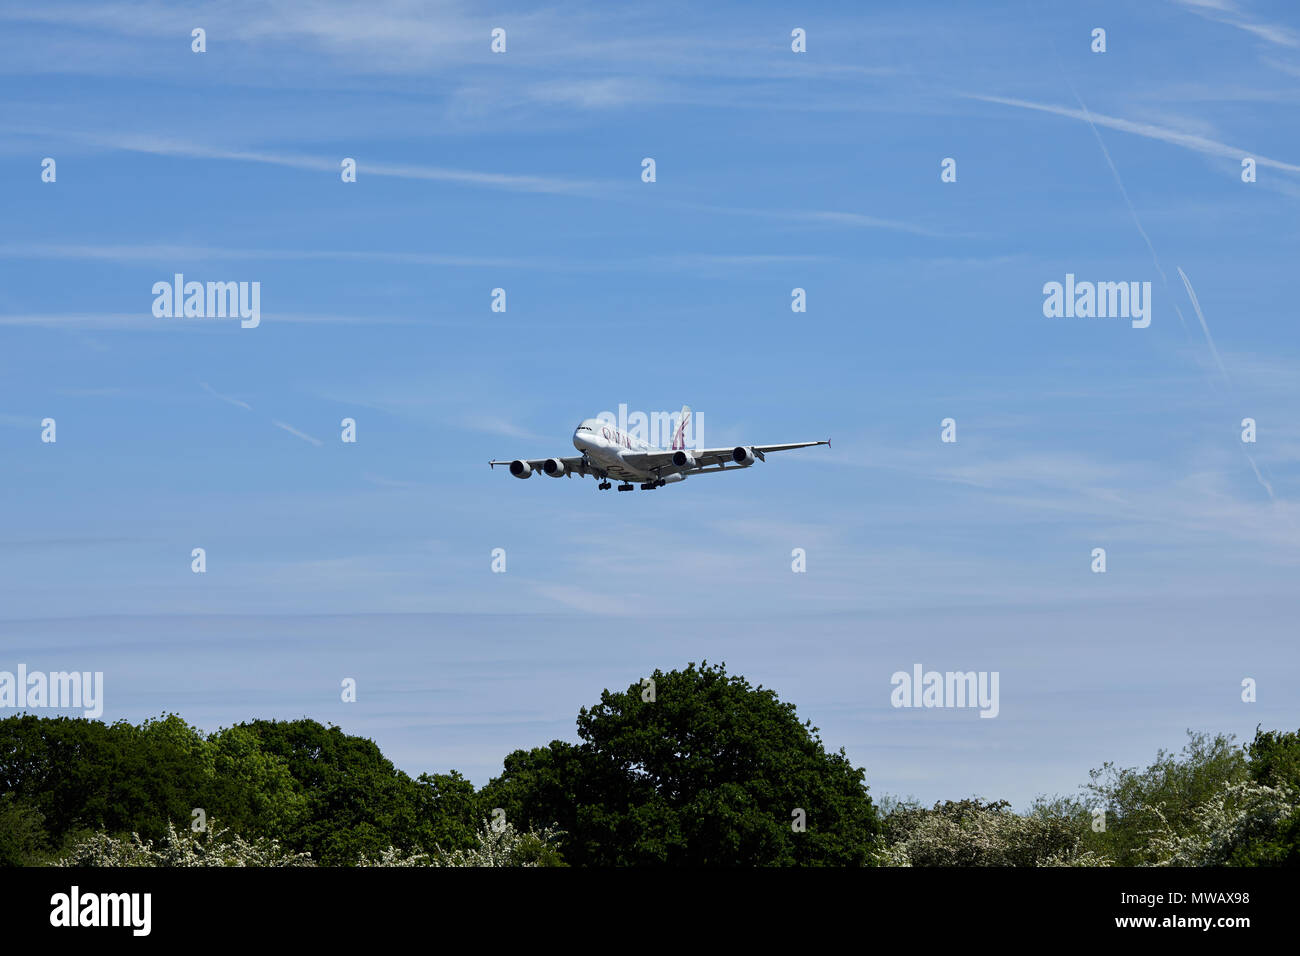 Qatar Airways Airbus A380-800 aircraft, registration number A7-APA, approaching a landing at London Heathrow airport. - Stock Image